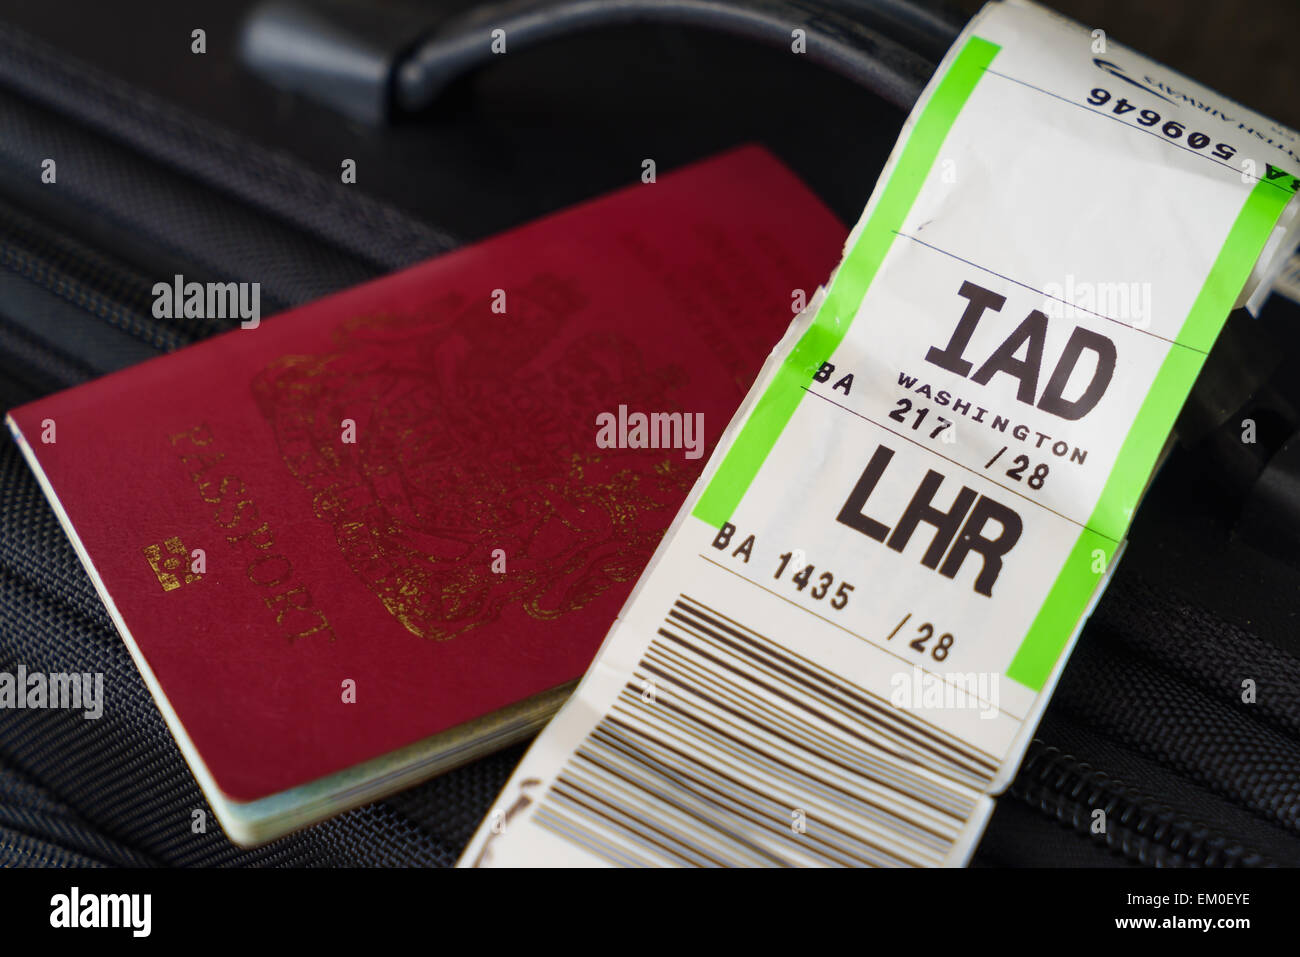 A suitcase with a airline barcode baggage tag from London Heathrow (LHR) to Washington Dulles (IAD), and a red UK - Stock Image